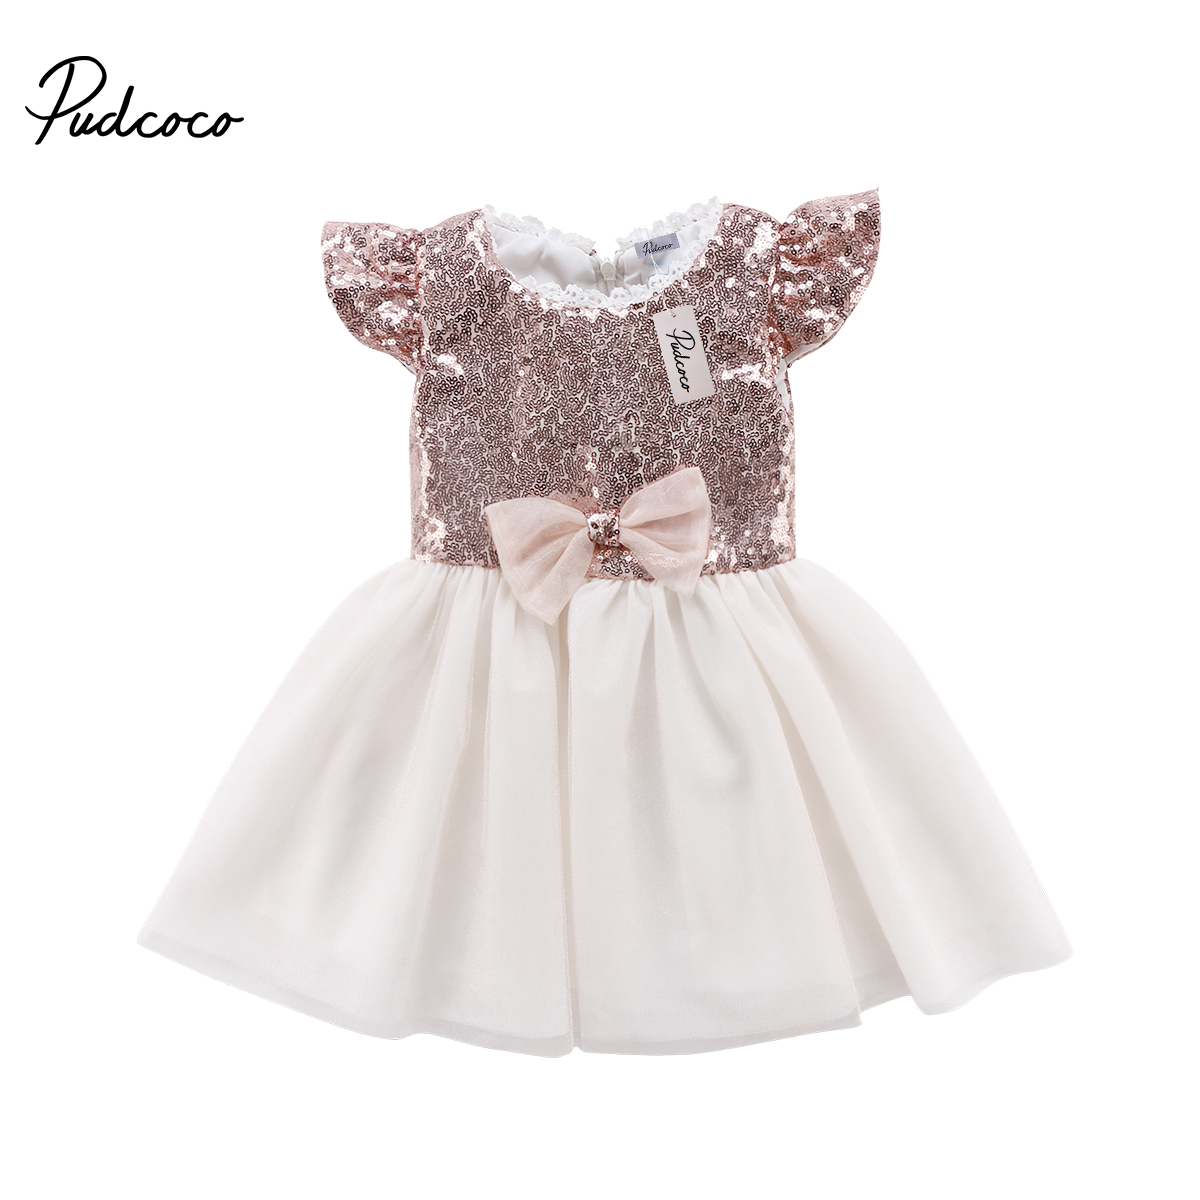 2018 Princess Girl Dress Toddler Baby Kids Girls Party Lace Tulle Dress Infant Kid Girl Sequin Dresses Bowknot Sundress bluetooth mp3 player fm transmitter modulator car charger with dual usb 3 1a earphone hands free call aux tf led display